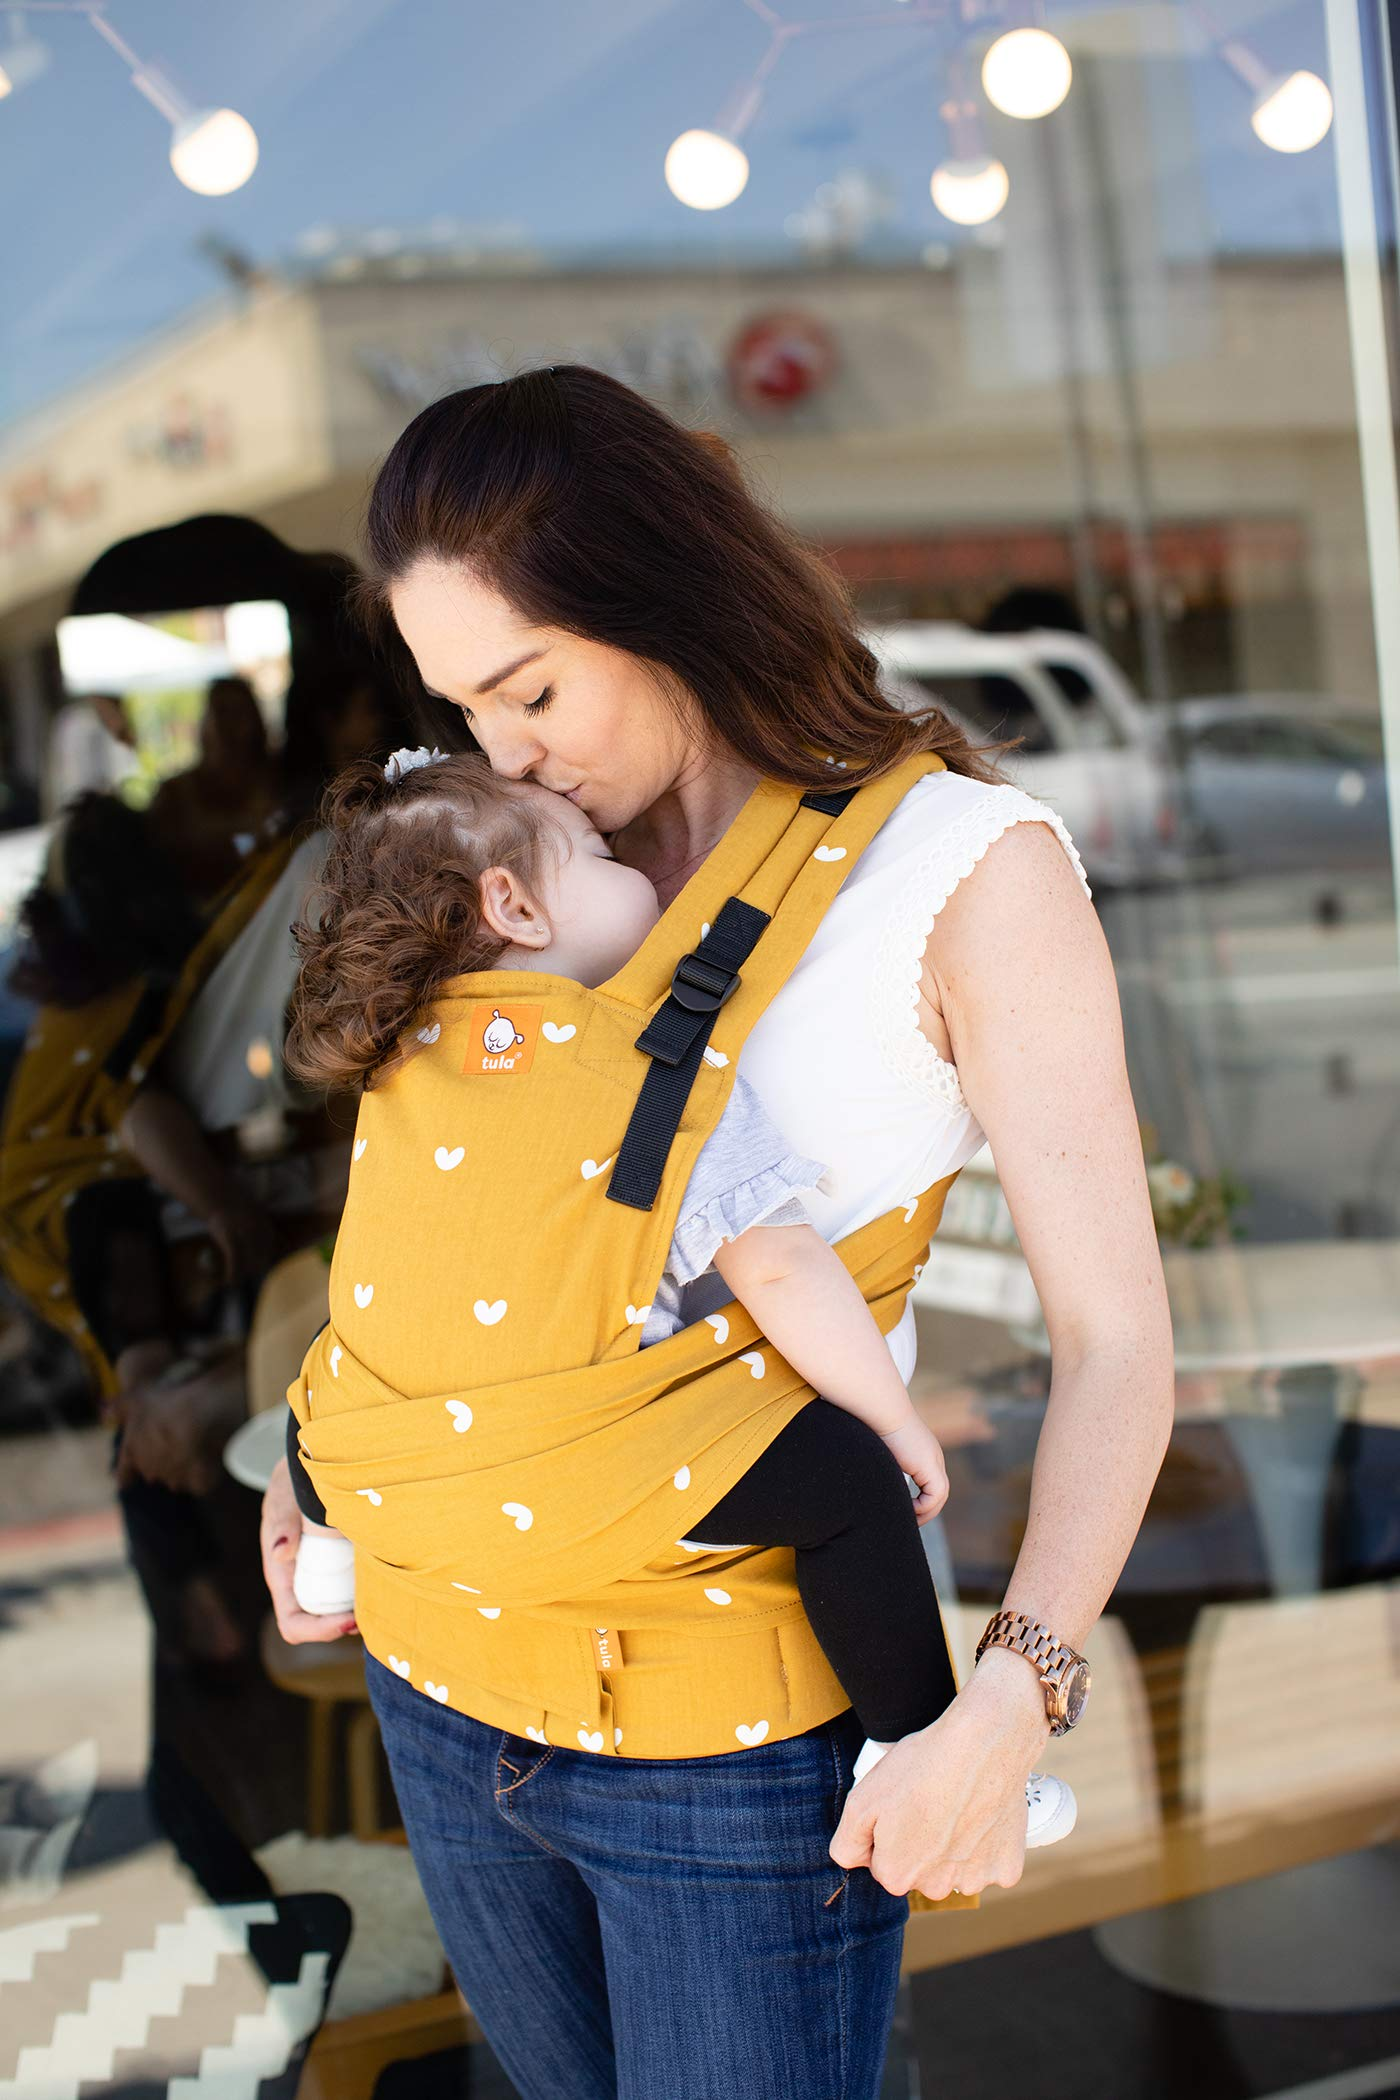 Tula Half Buckle TBCA5G1 Play - Asian Inspired Hybrid Baby Carrier with Padded Shoulder Straps with Crossover Option for Babies 3 2 to 20 4 kg Tula Multiple door positions: front inward, hip and back EASILY ADJUSTABLE DESIGN: Main panel with adjustable height and width, allowing for ergonomic and tight positions as baby grows. For babies from 3, 2 to 20, 4 kg Its long fabric straps wrap around the body allowing for the perfect fit. 5